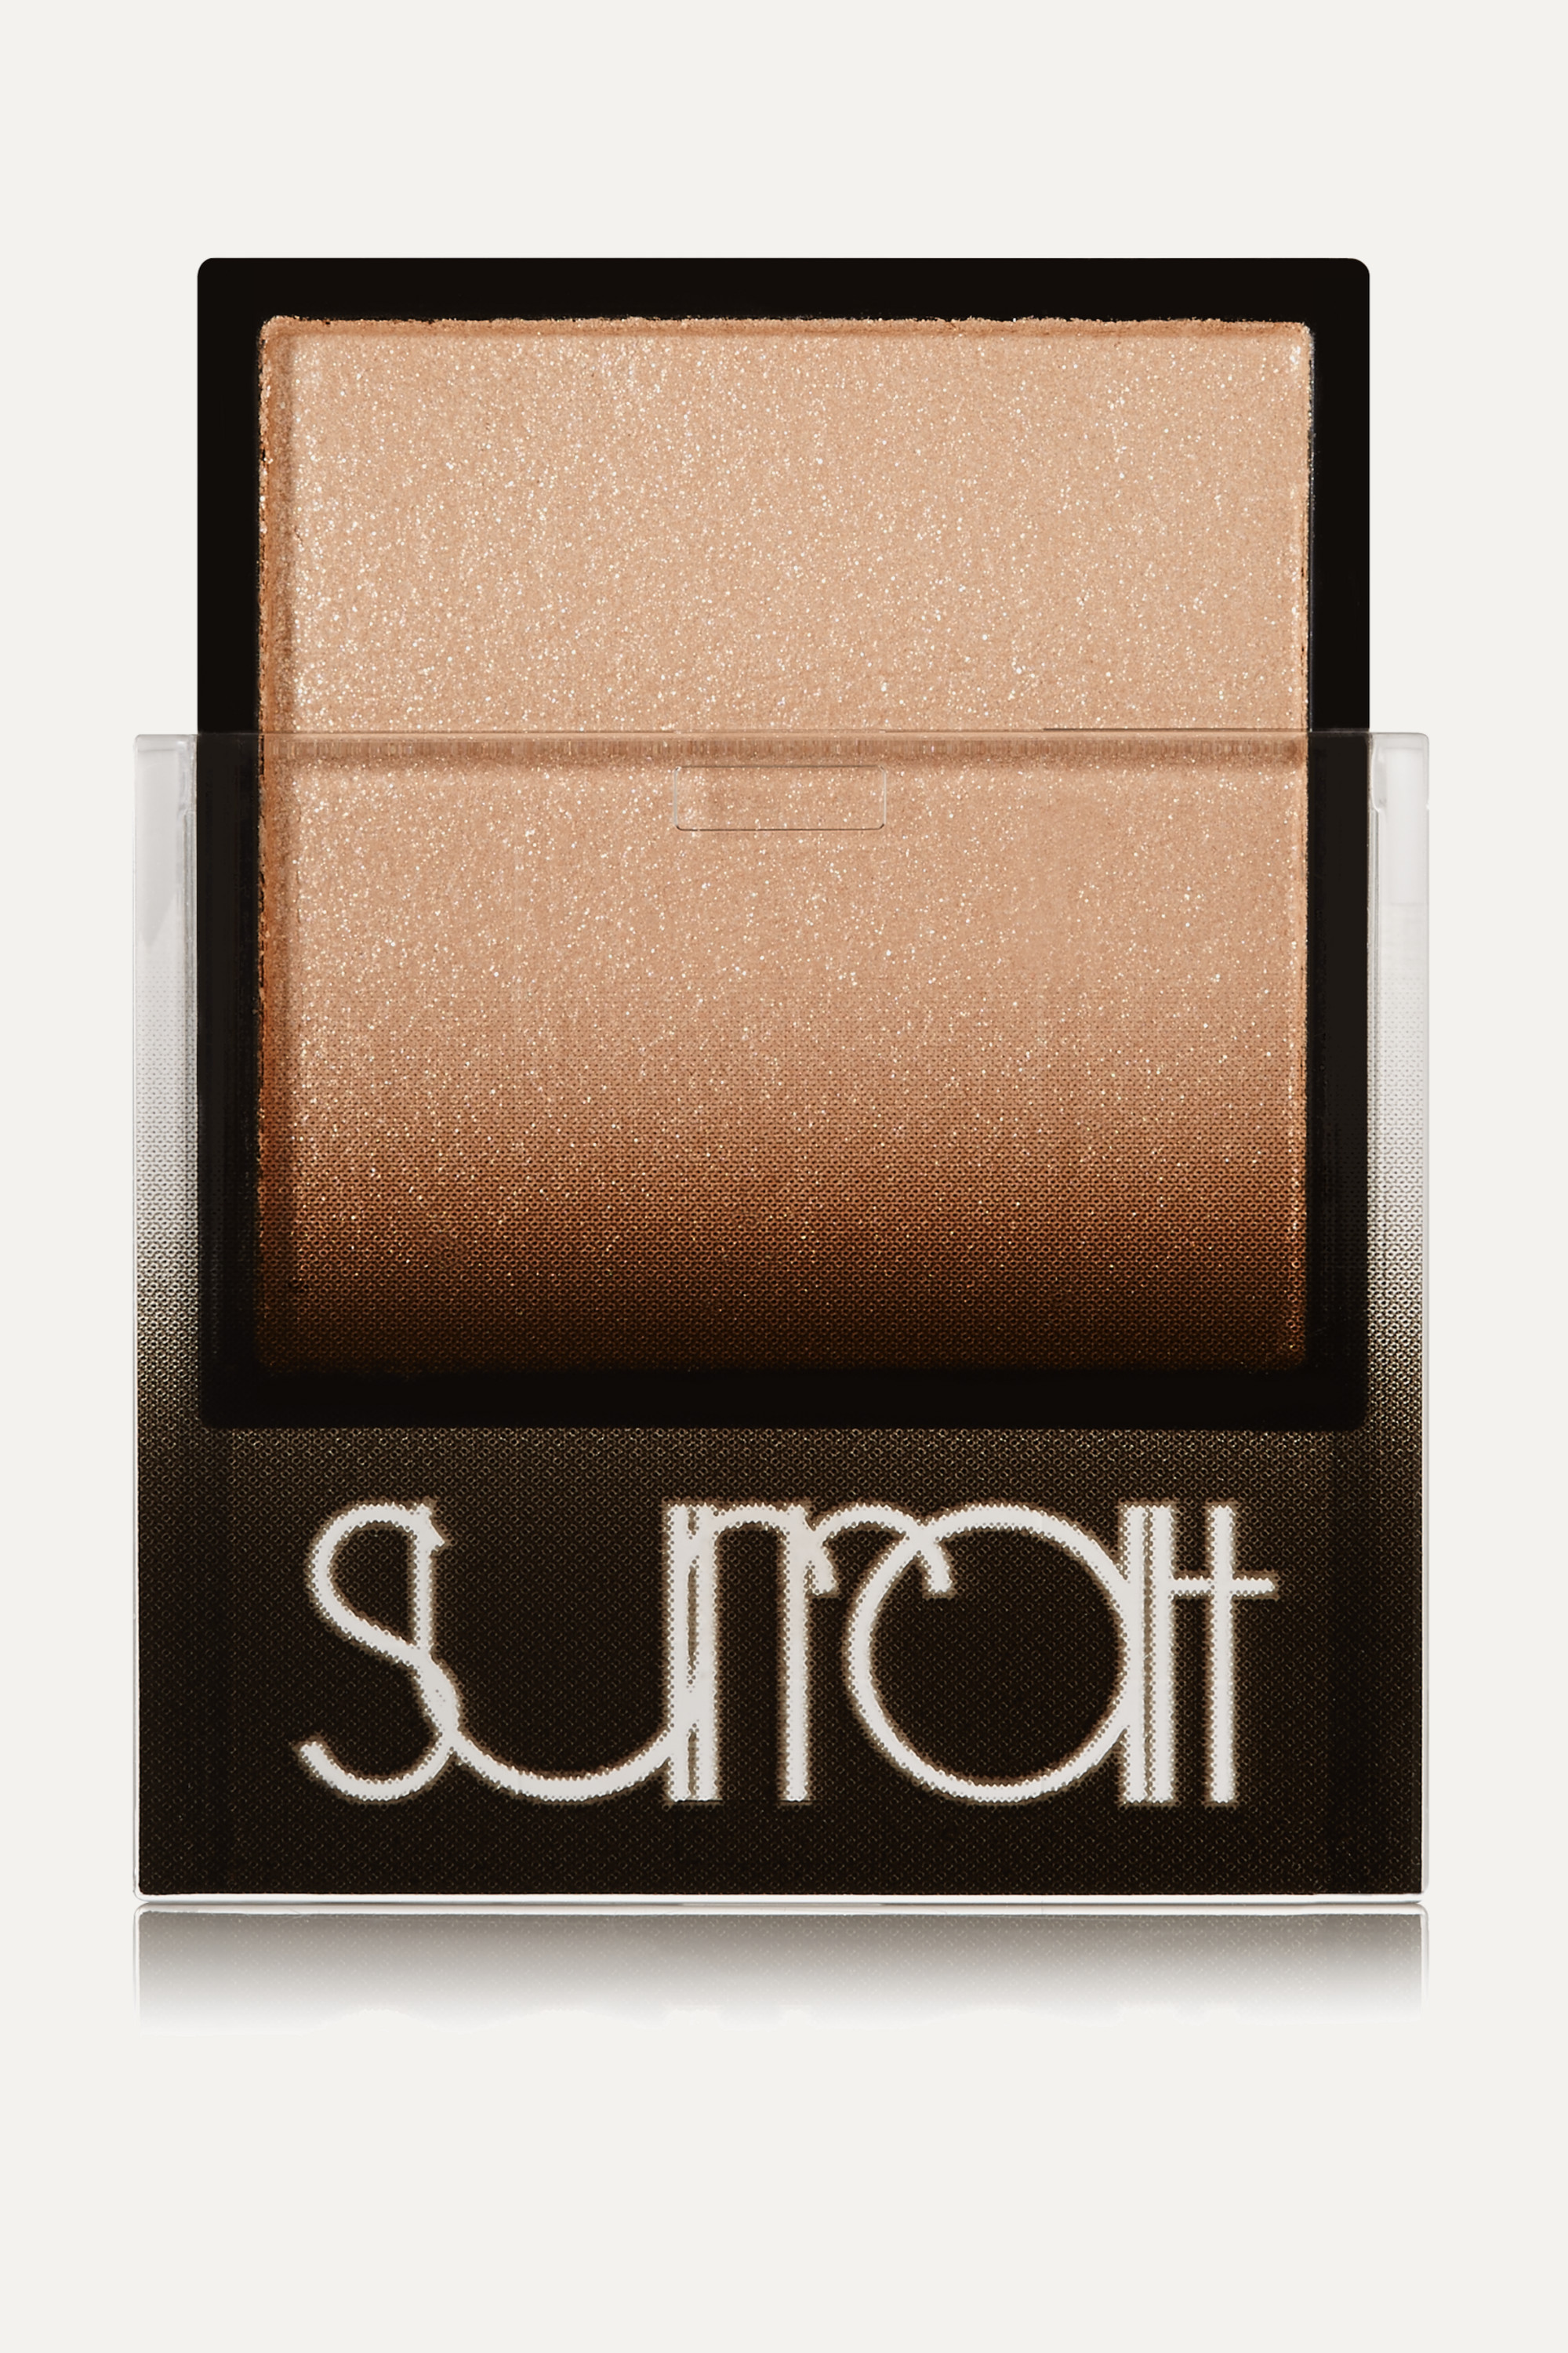 Surratt Beauty Artistique Eyeshadow – Doré Rose 6 – Lidschatten